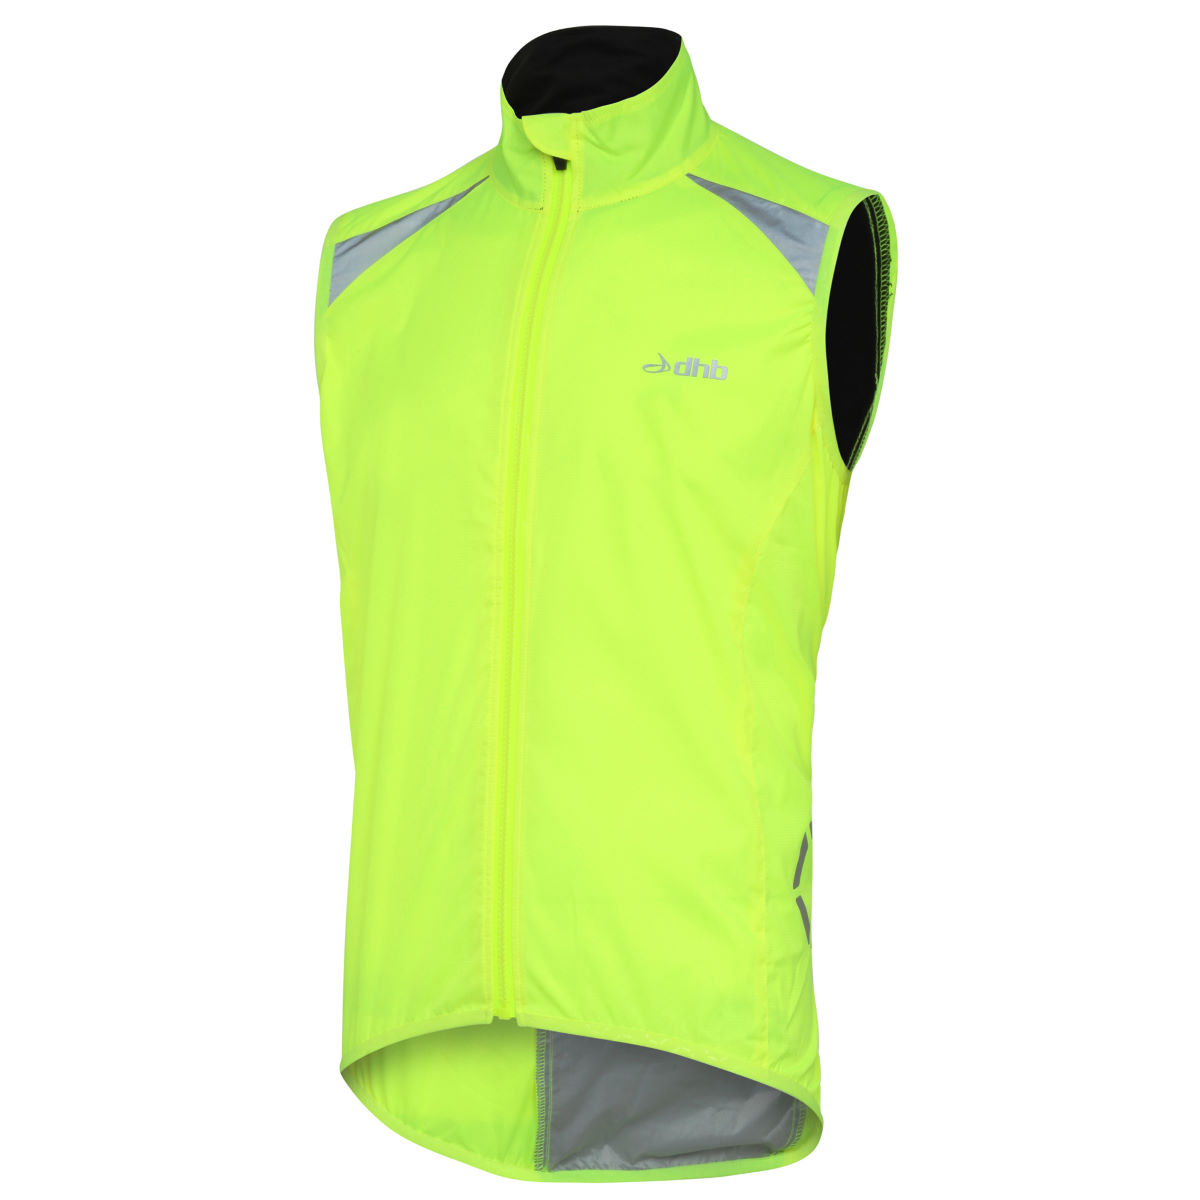 Gilet dhb Flashlight (coupe-vent, sans manches) - L Fluro Yellow